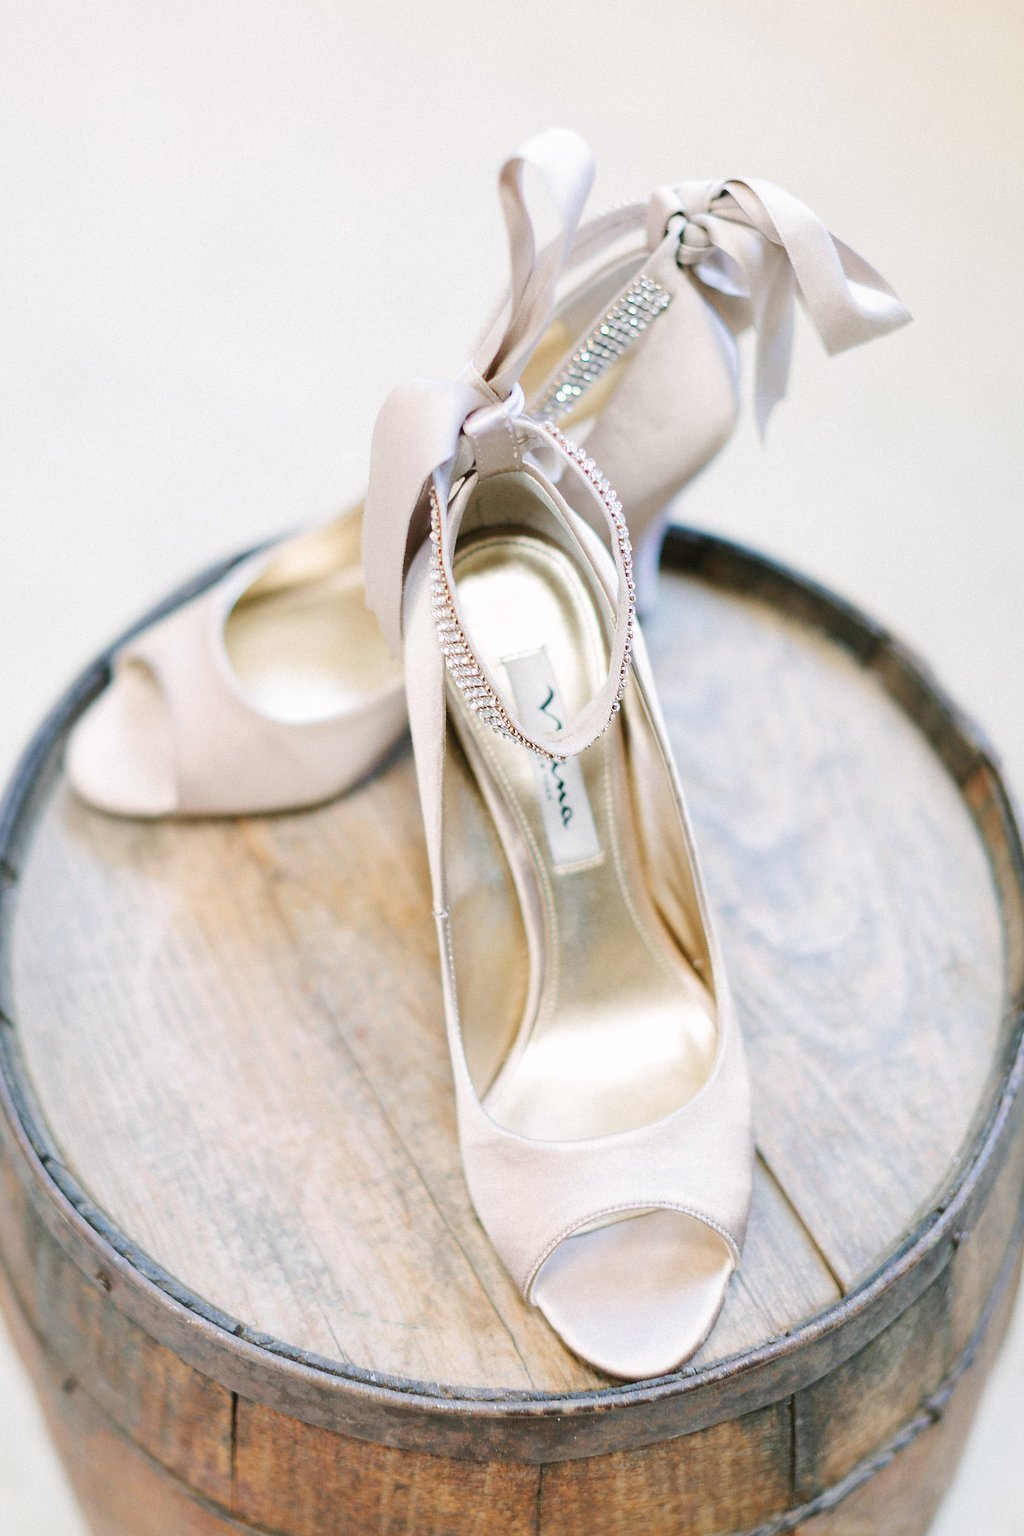 the bride's wedding mia wedding shoes